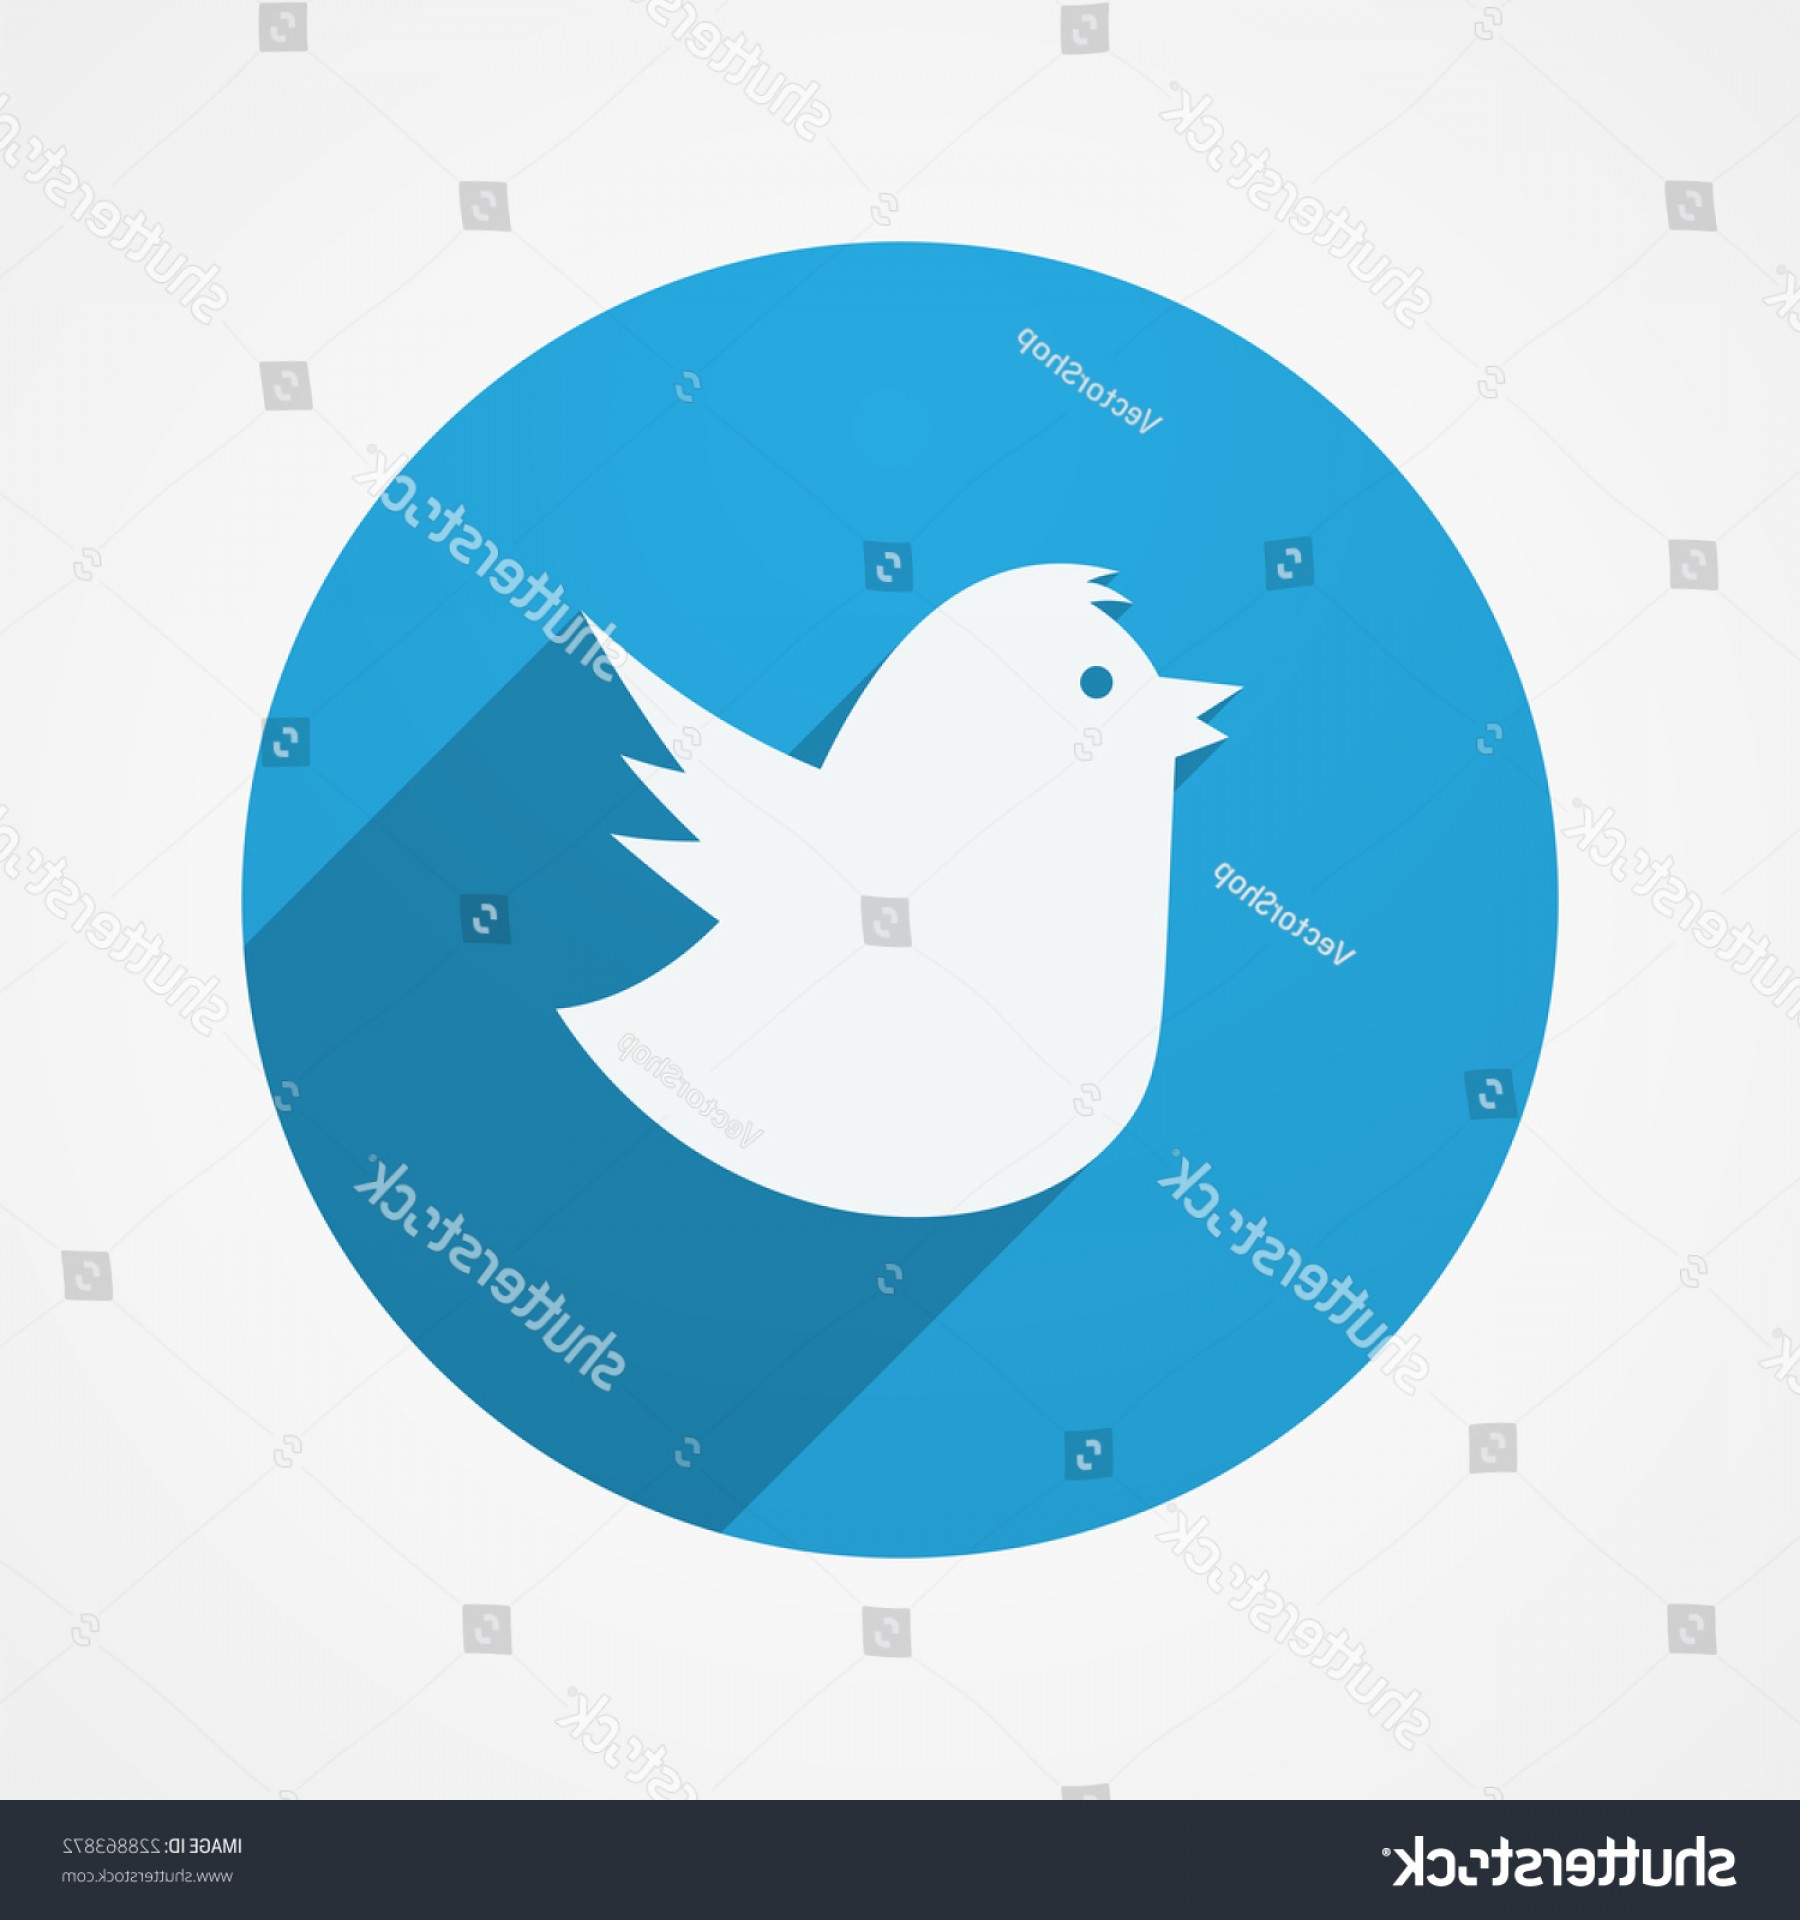 1800x1920 Twitter Bird Social Web Internet Button Lazttweet